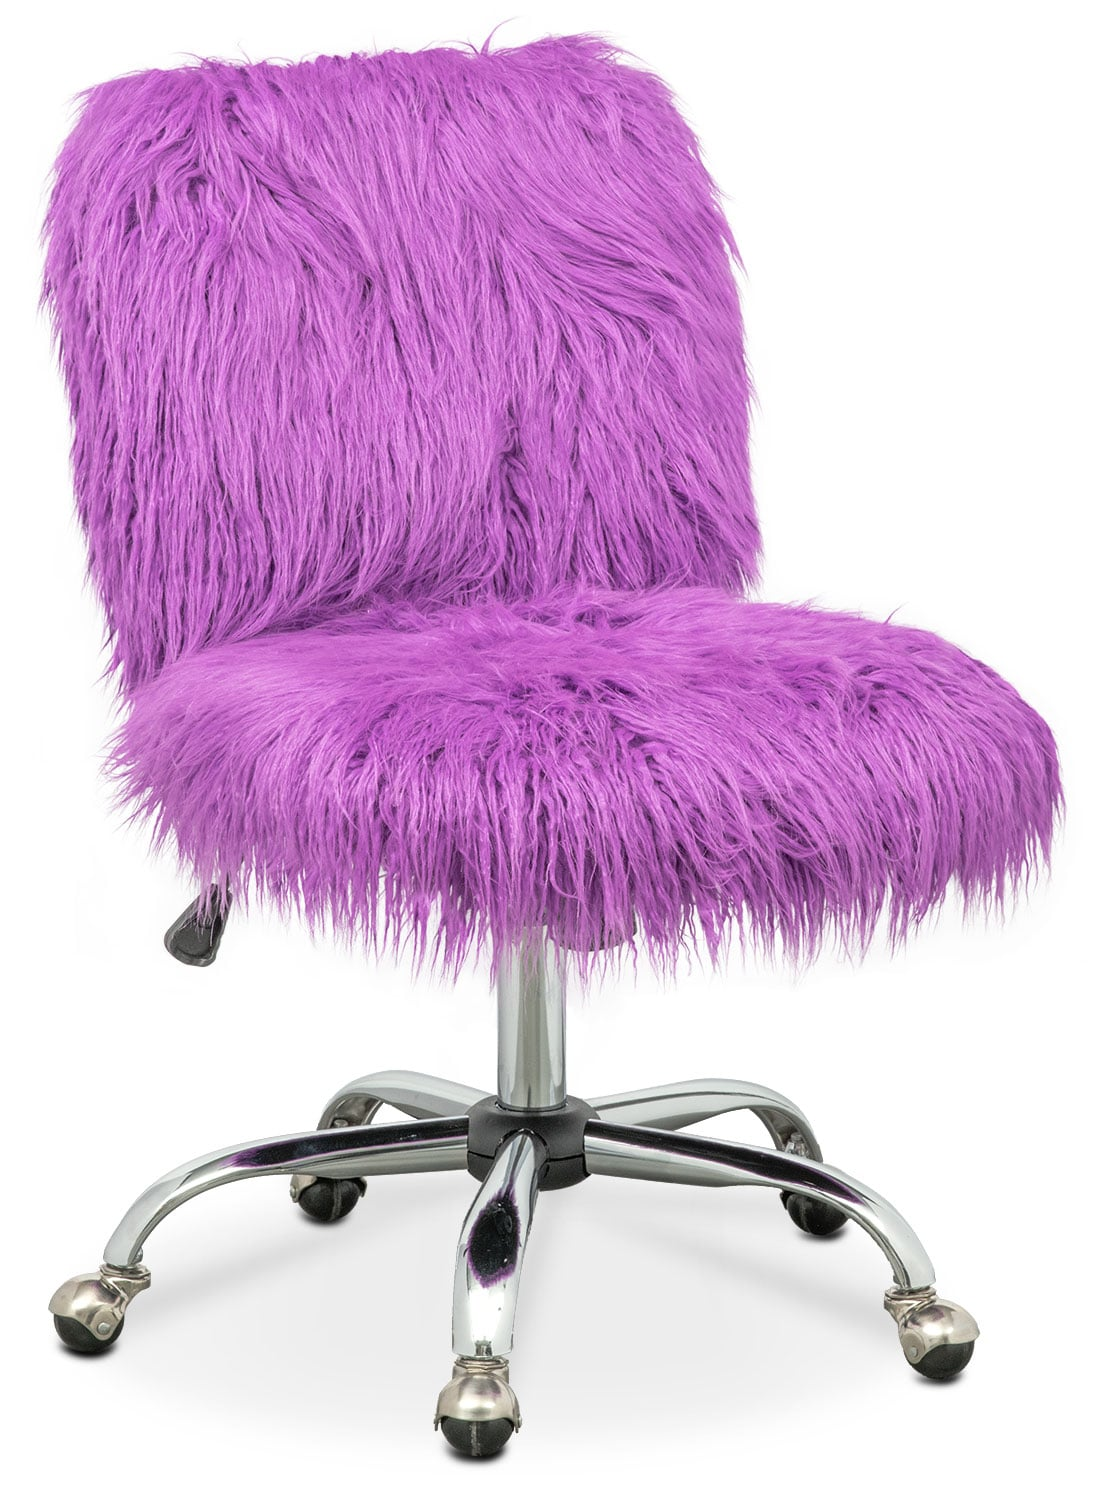 lilac office chair unusual wedding decorations frenzy purple value city furniture and mattresses click to change image